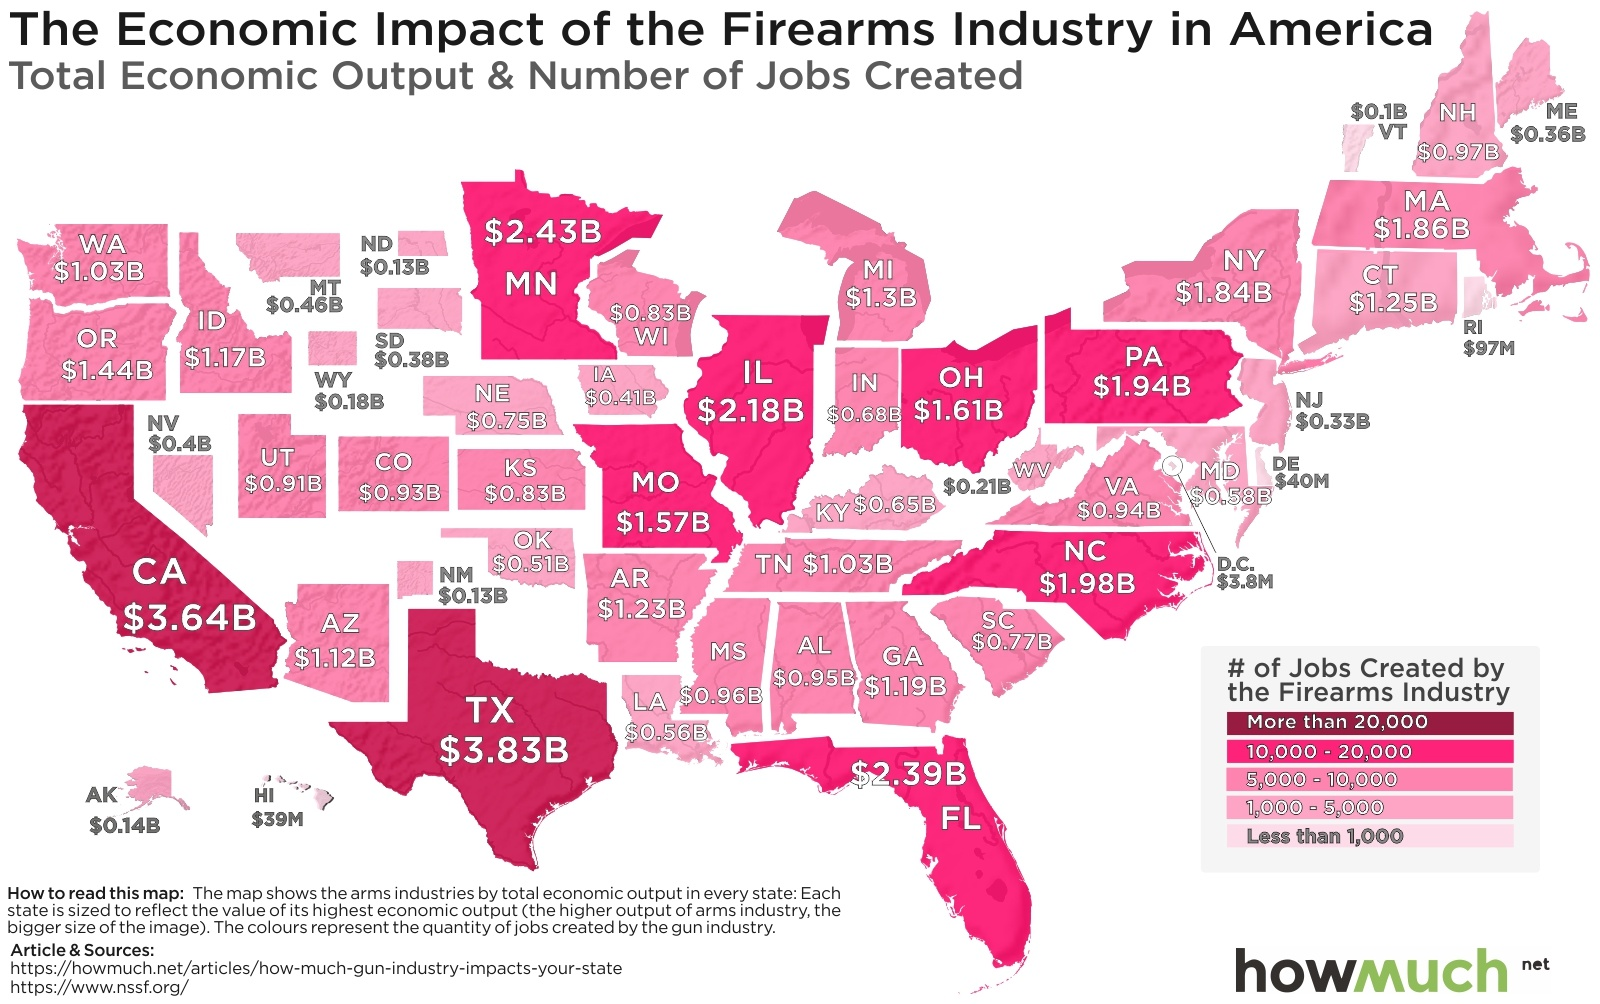 The economic impacts of the firearms industry in America. Total economic output and number of jobs created.